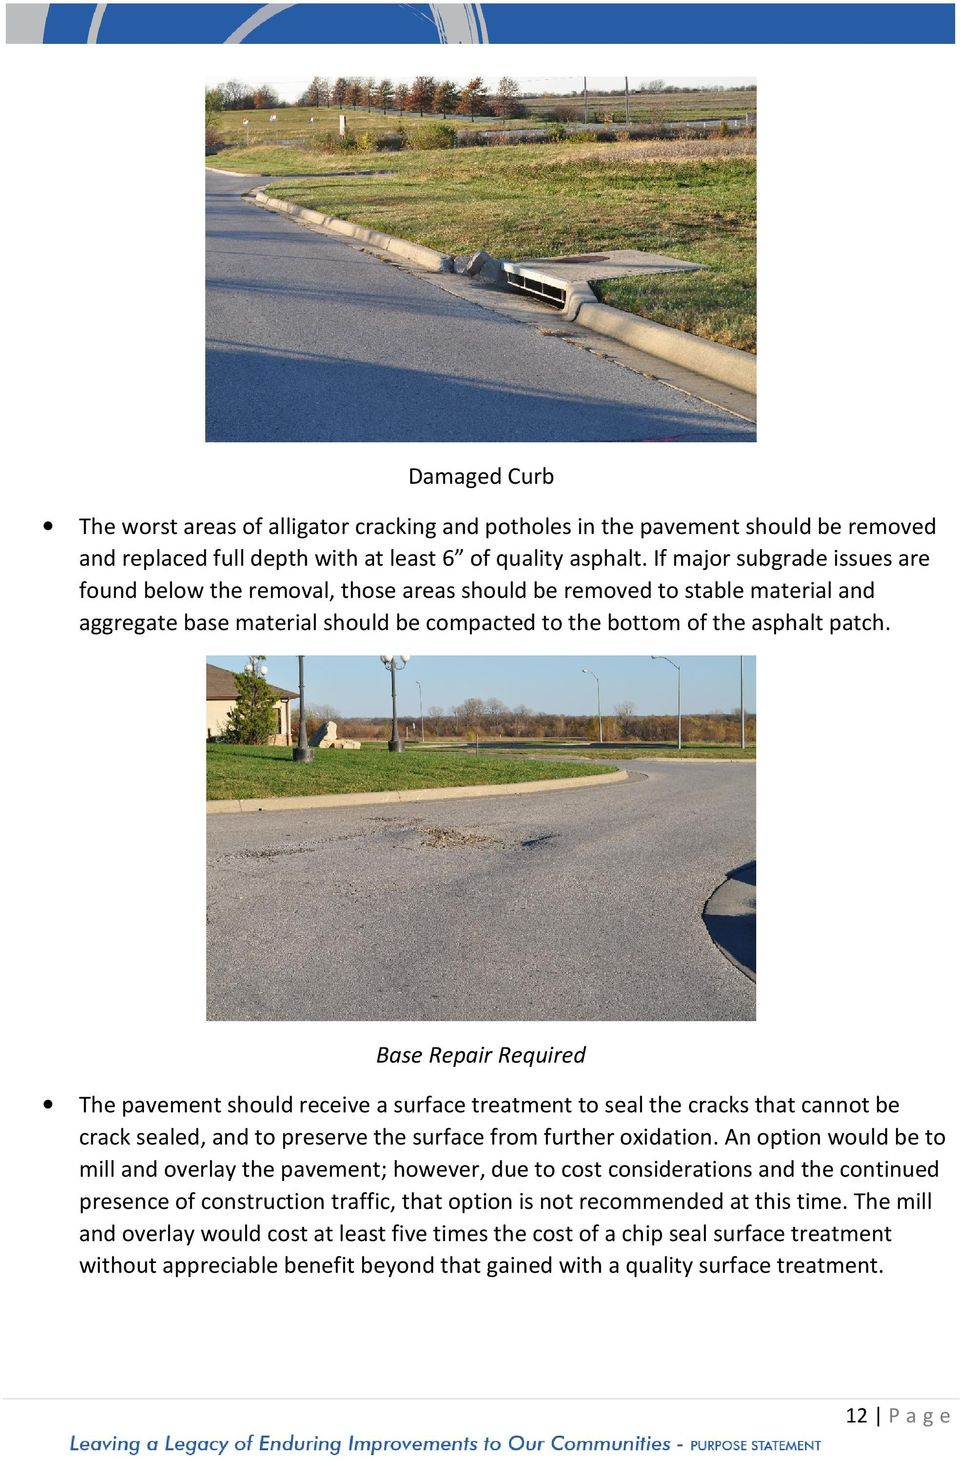 Base Repair Required The pavement should receive a surface treatment to seal the cracks that cannot be crack sealed, and to preserve the surface from further oxidation.